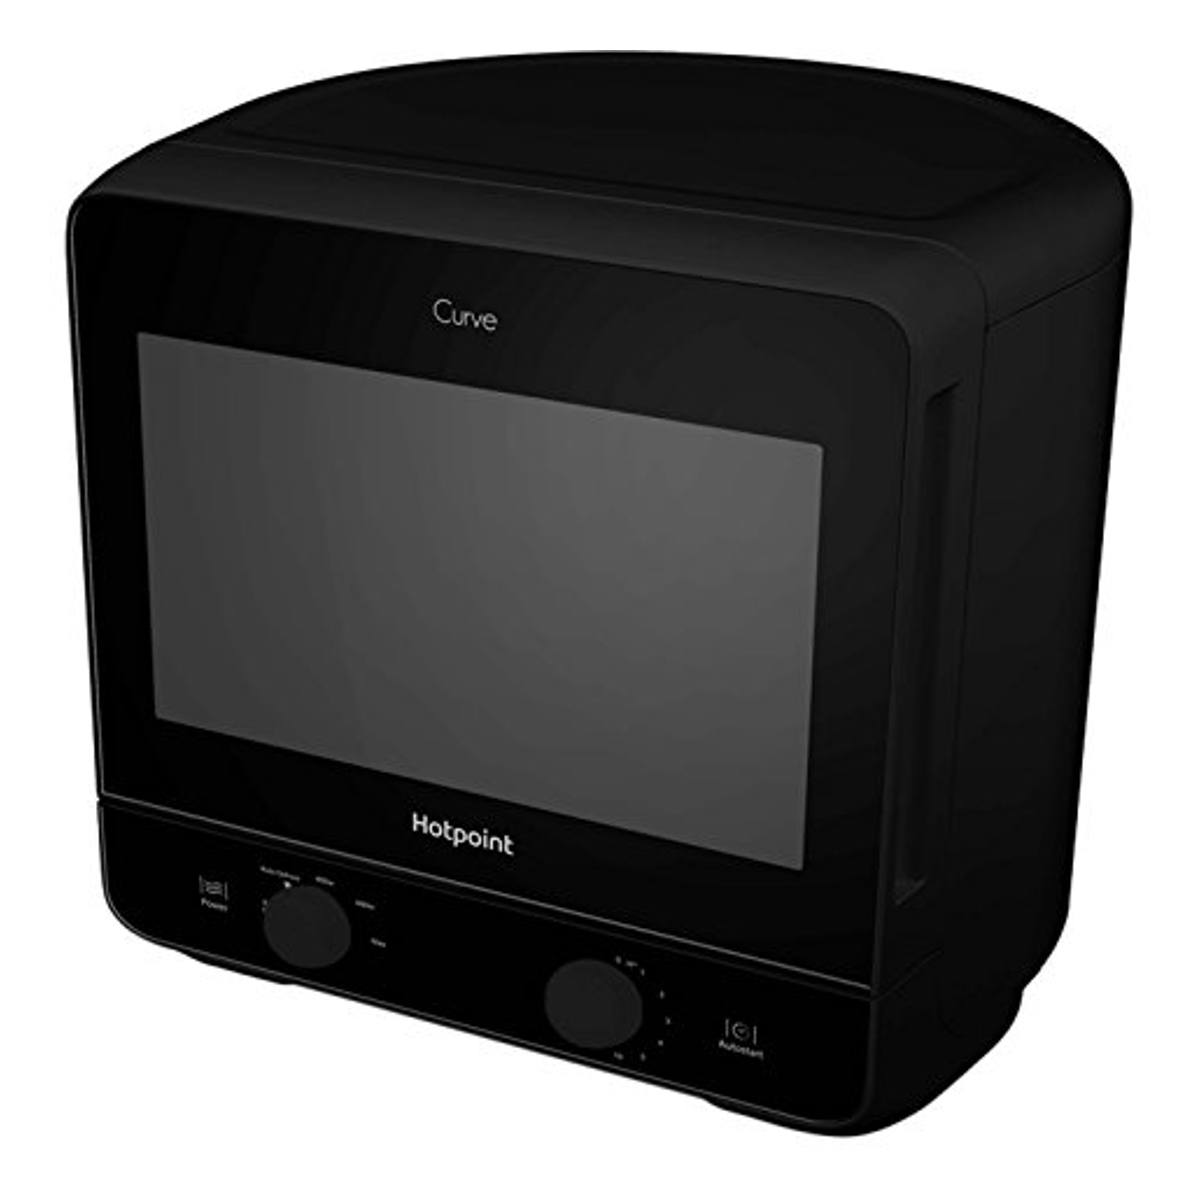 Range Style Cookers >> Hotpoint Curve MWH1311B 13L 700W Solo Microwave | Hughes